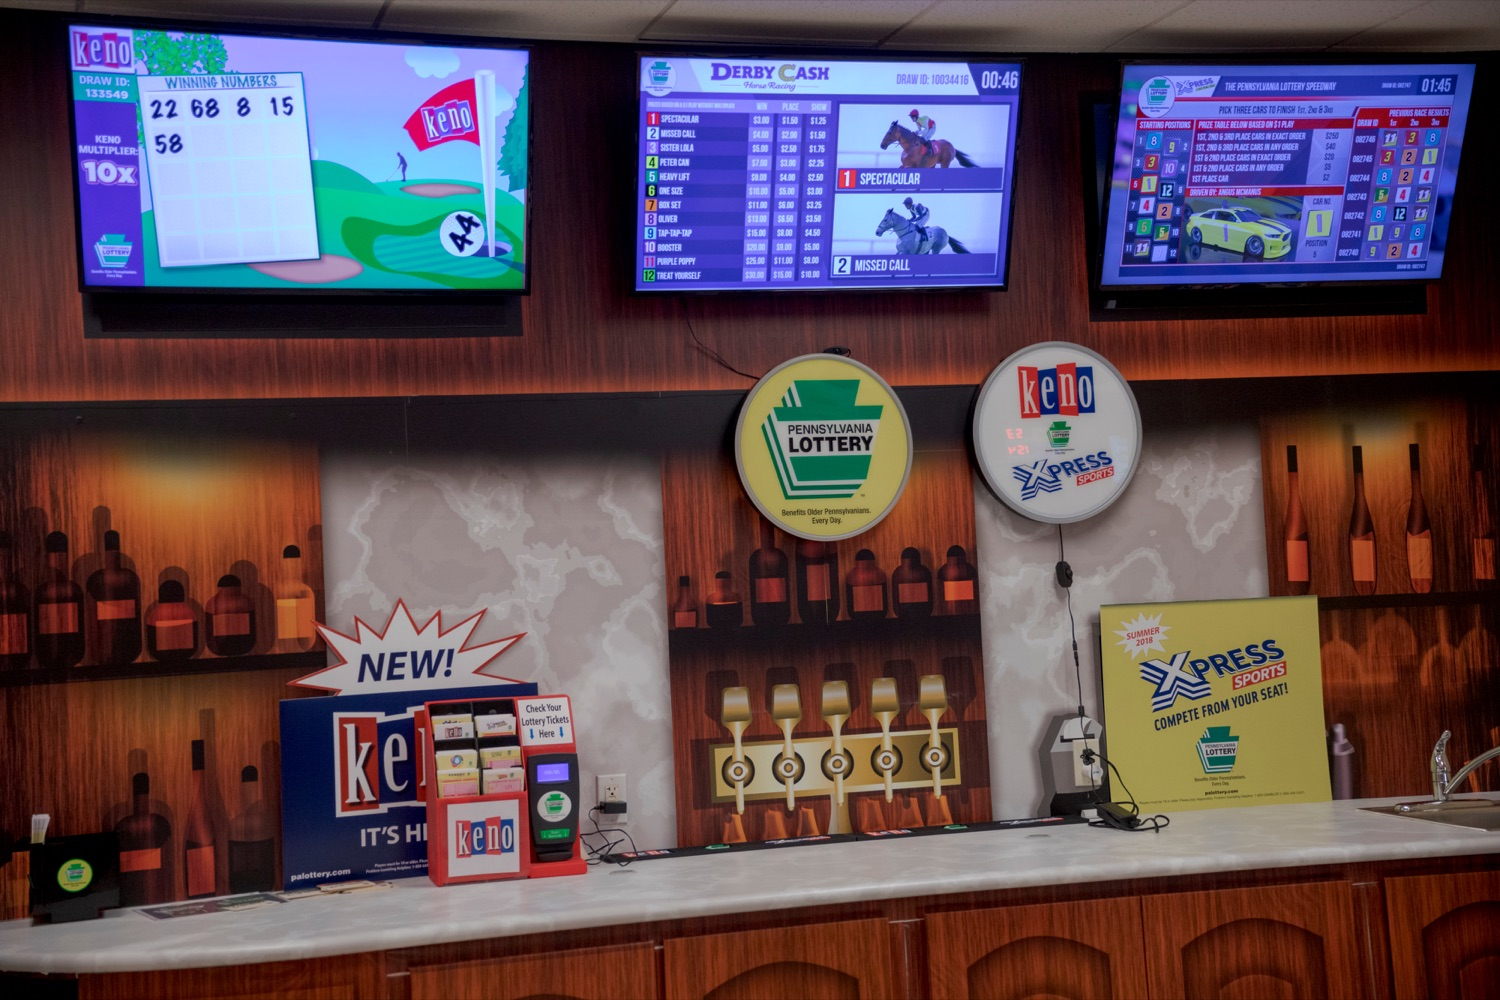 """<a href=""""http://filesource.abacast.com/commonwealthofpa/photo/17265_Lottery_Derby_Cash_NK_003.JPG"""" target=""""_blank"""">⇣Download Photo<br></a>The Pennsylvania Lottery today launched Derby Cash Horse Racing, a new and highly anticipated virtual horse racing game that will have players on the edge of their seats. Every five minutes, players have the chance to win up to $800,000 on a $1 play. Purchases can be made anywhere Lottery games are sold and races can be watched at nearly 2,000 of the Lotterys retailers, mainly at bars and restaurants."""